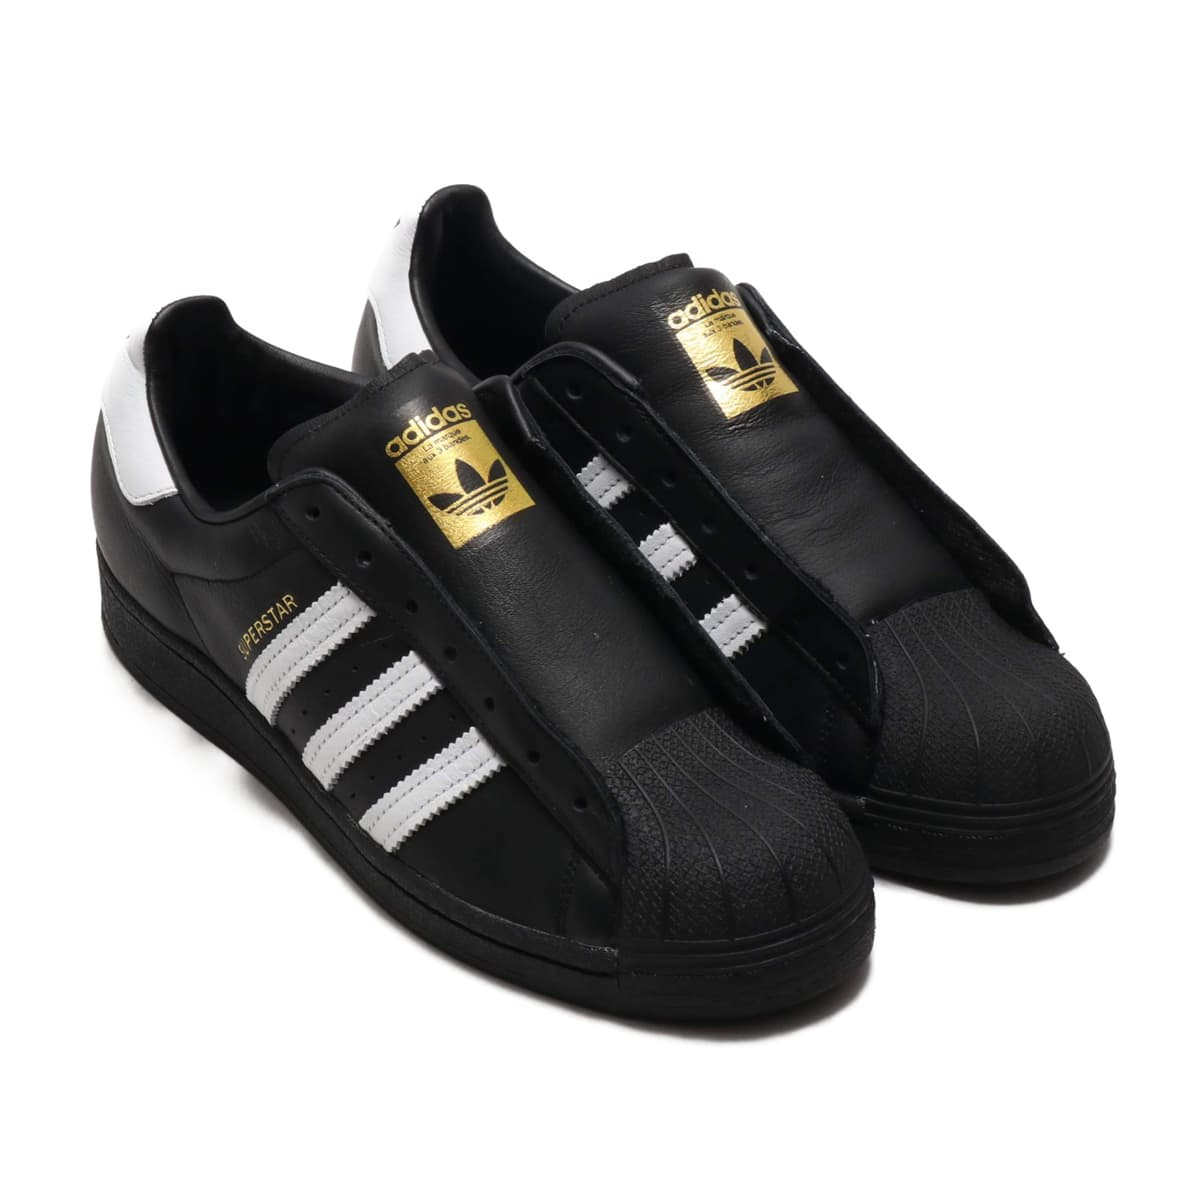 adidas SUPERSTAR LACELESS CORE BLACK/FOOTWEAR WHITE/CORE BLACK 20SS-S_photo_large